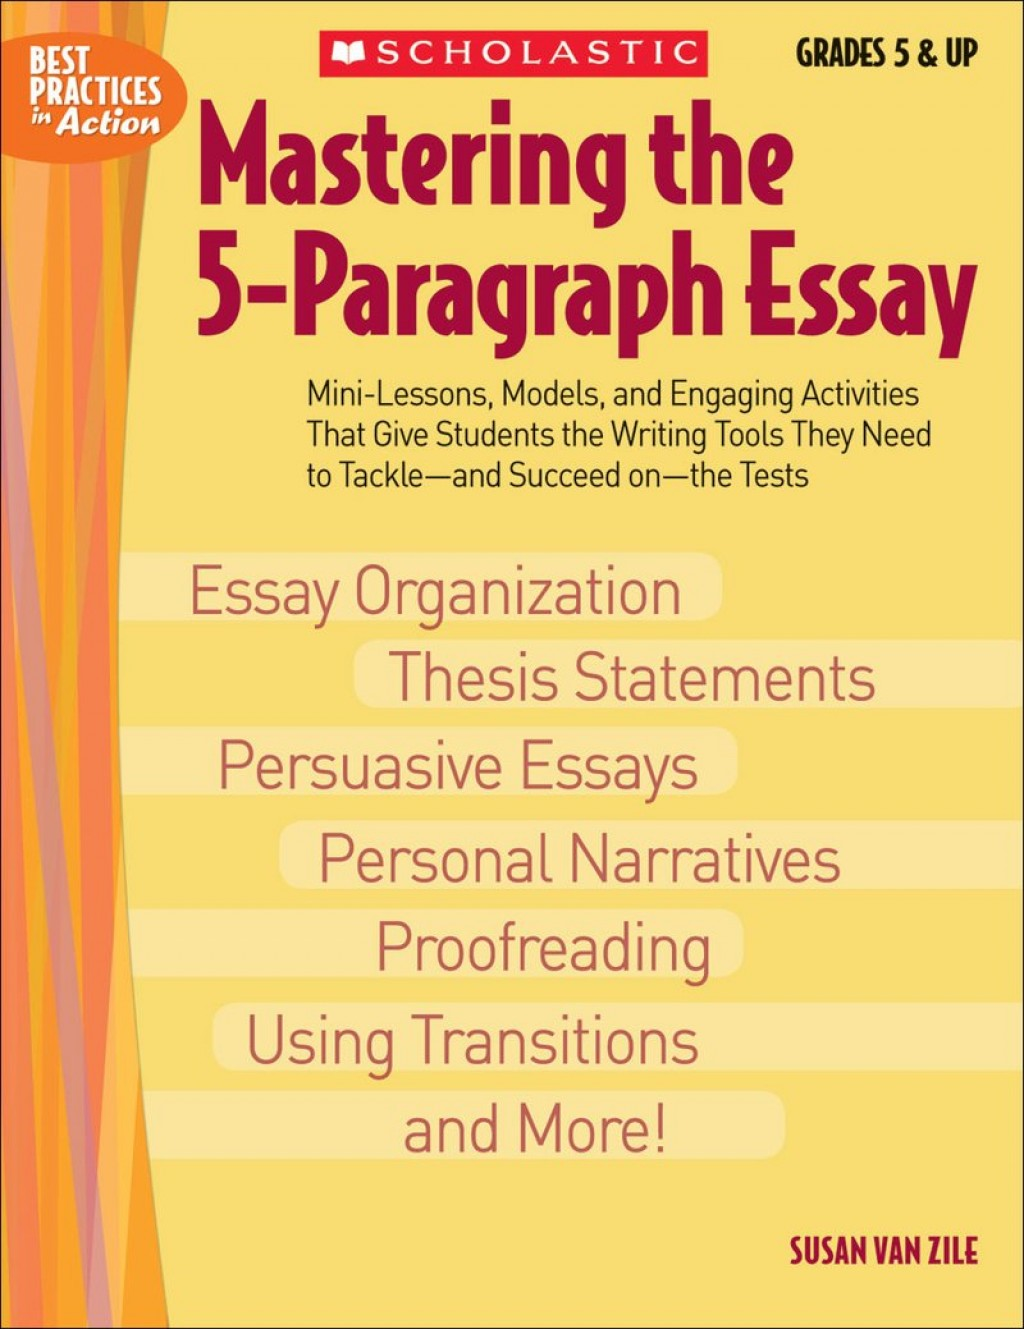 017 Paragraph Essay Example 9780439635257 Mres Singular 5 Outline High School 6th Grade Topics For 5th Large